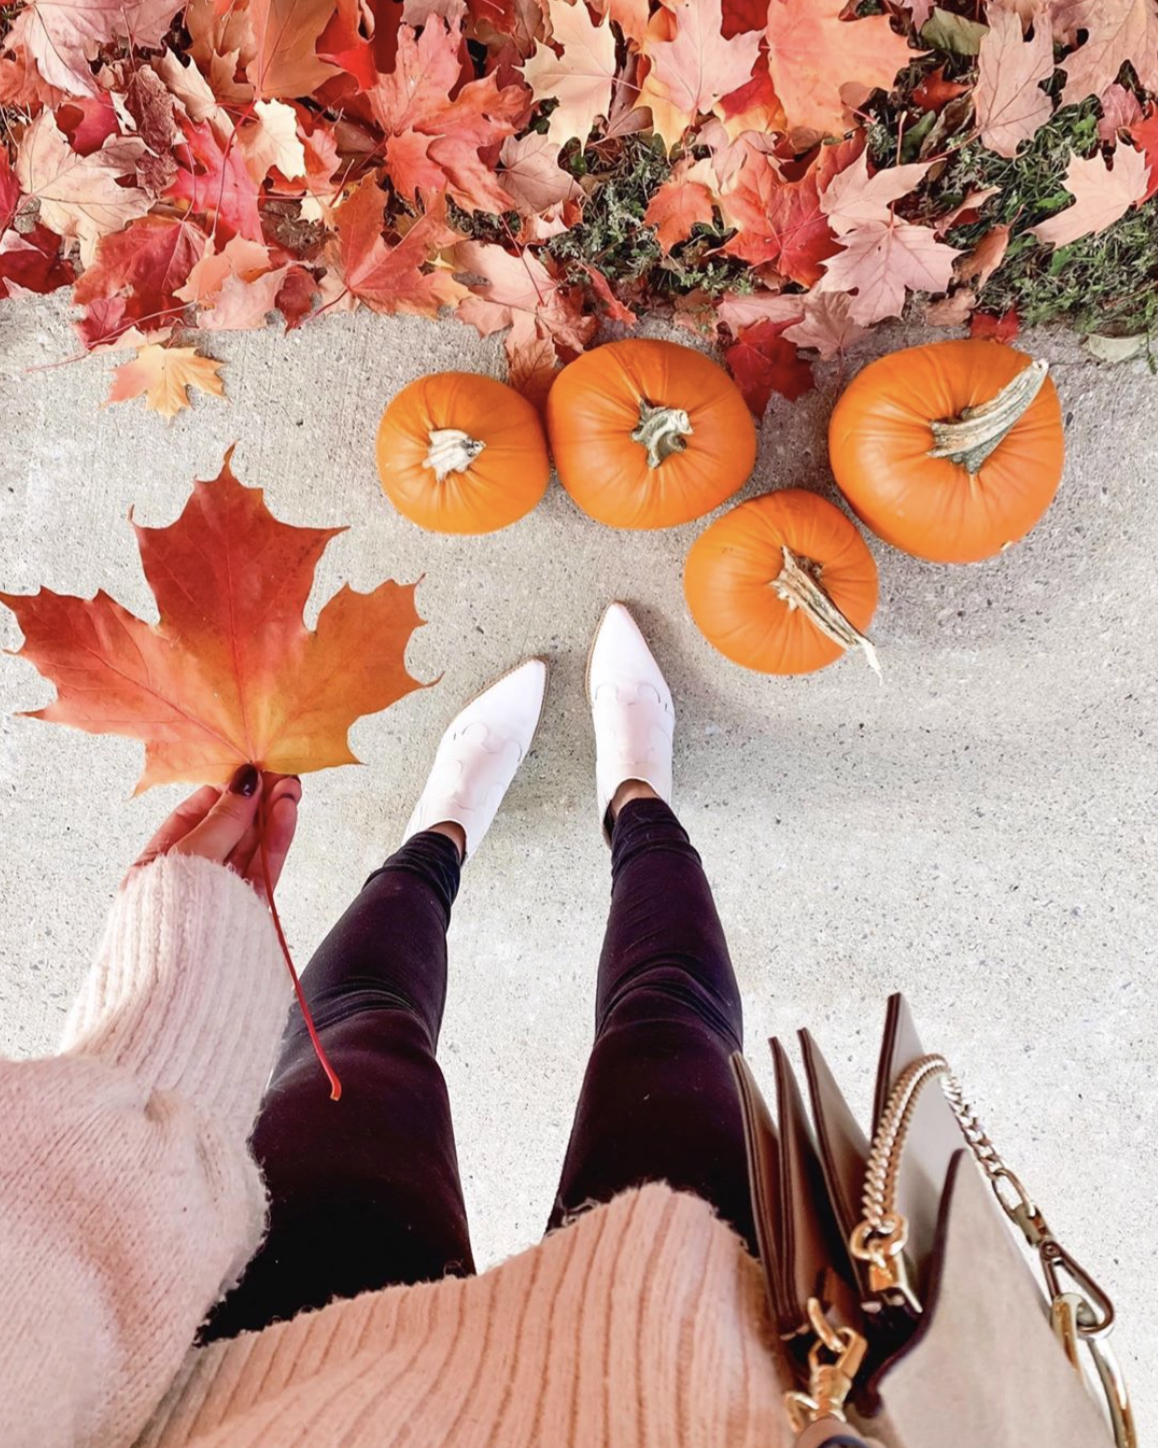 infidelity | cheating | dating advice | lifestyle blogger Mash Elle | fall | pumpkins